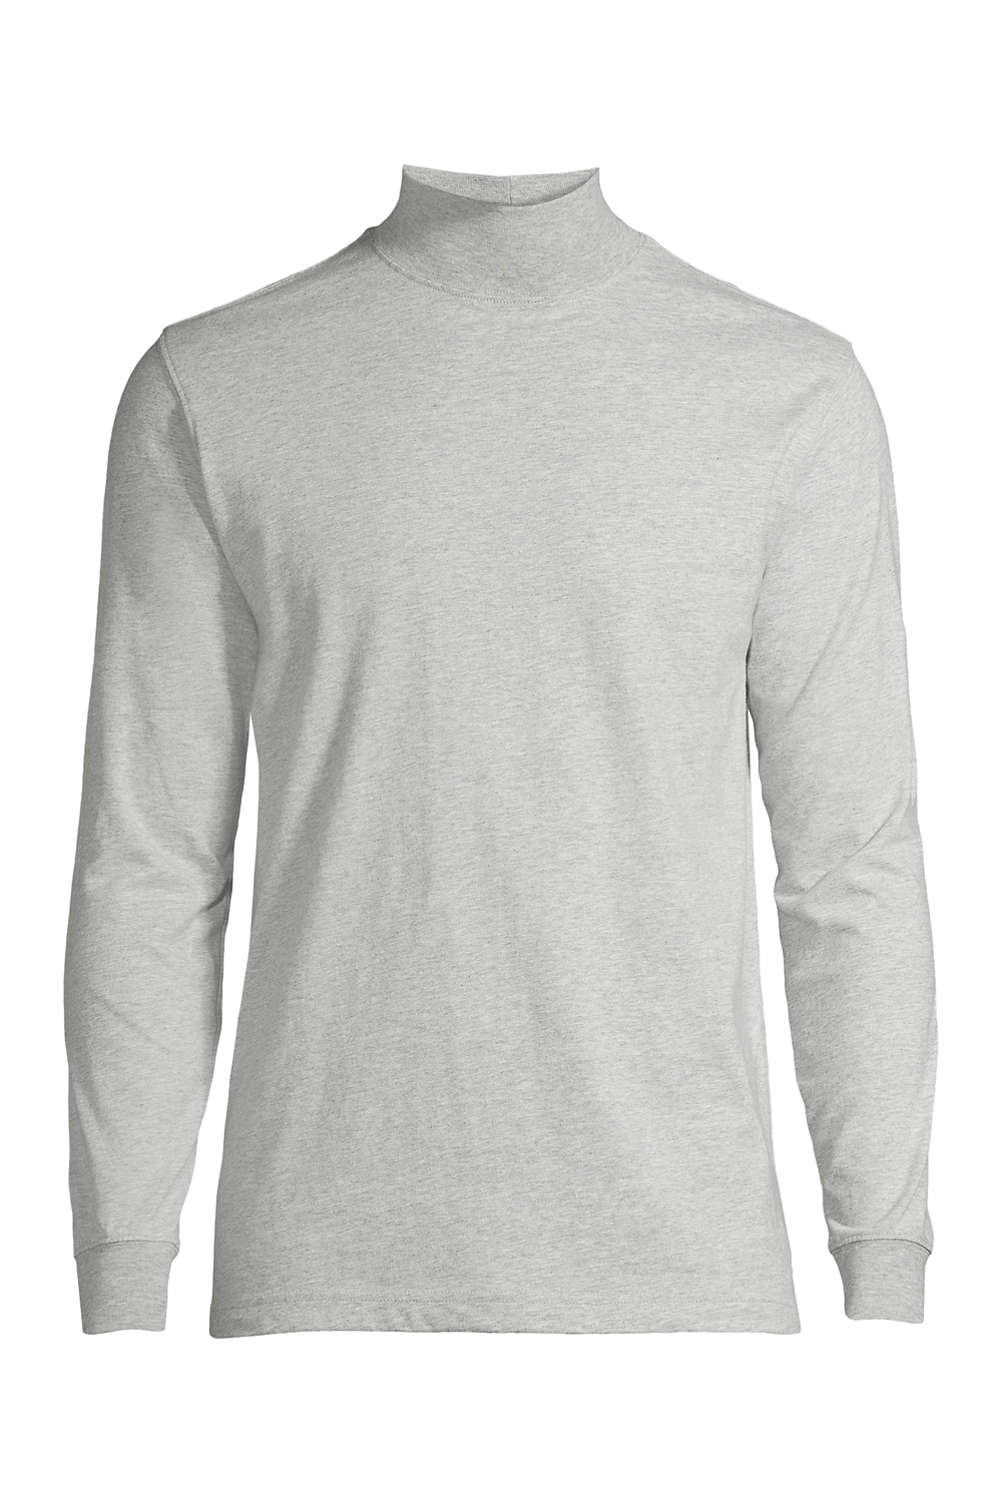 f52fb7f411 Men's Super-T Mock Turtleneck from Lands' End